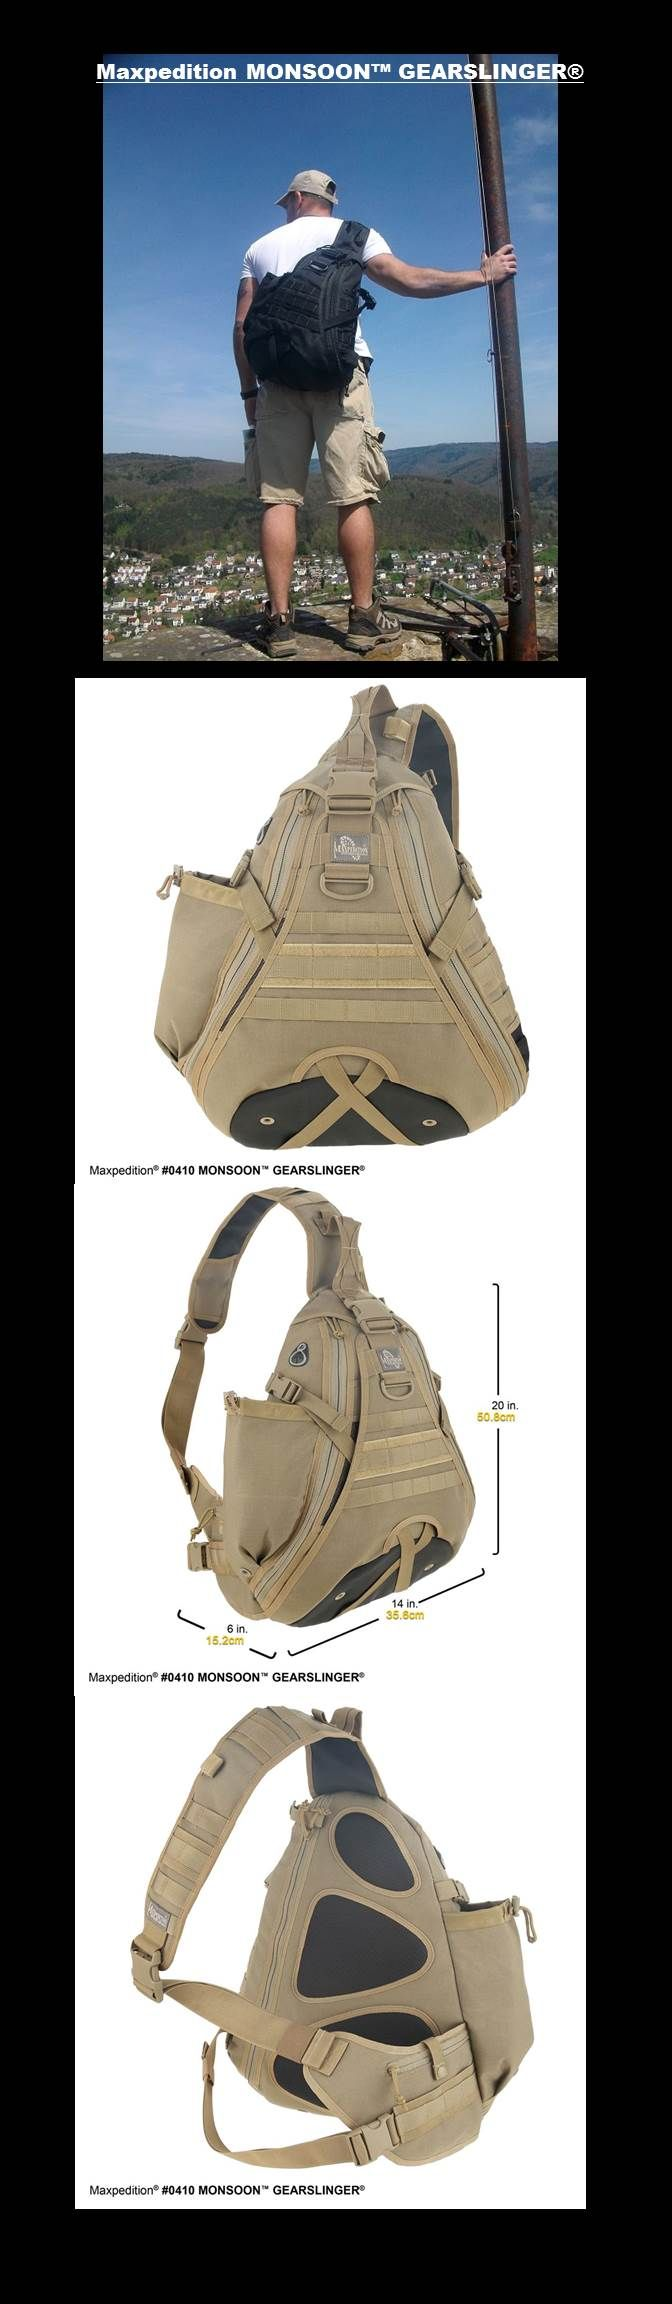 The Monsoon Gearslinger is a popular pack among our customers due to its versatile and easily accessible nature. It is rugged enough for the field but also can be used as an EDC bag in urban & suburban applications. The Monsoon features a unique teardrop shape that hosts a spacious main compartment. The exterior back zipper pocket also functions as a comfortable CCW compartment.  Buy a Monsoon Gearslinger, the original urban tactical pack!  VIVIAN HAS HERS..LOL